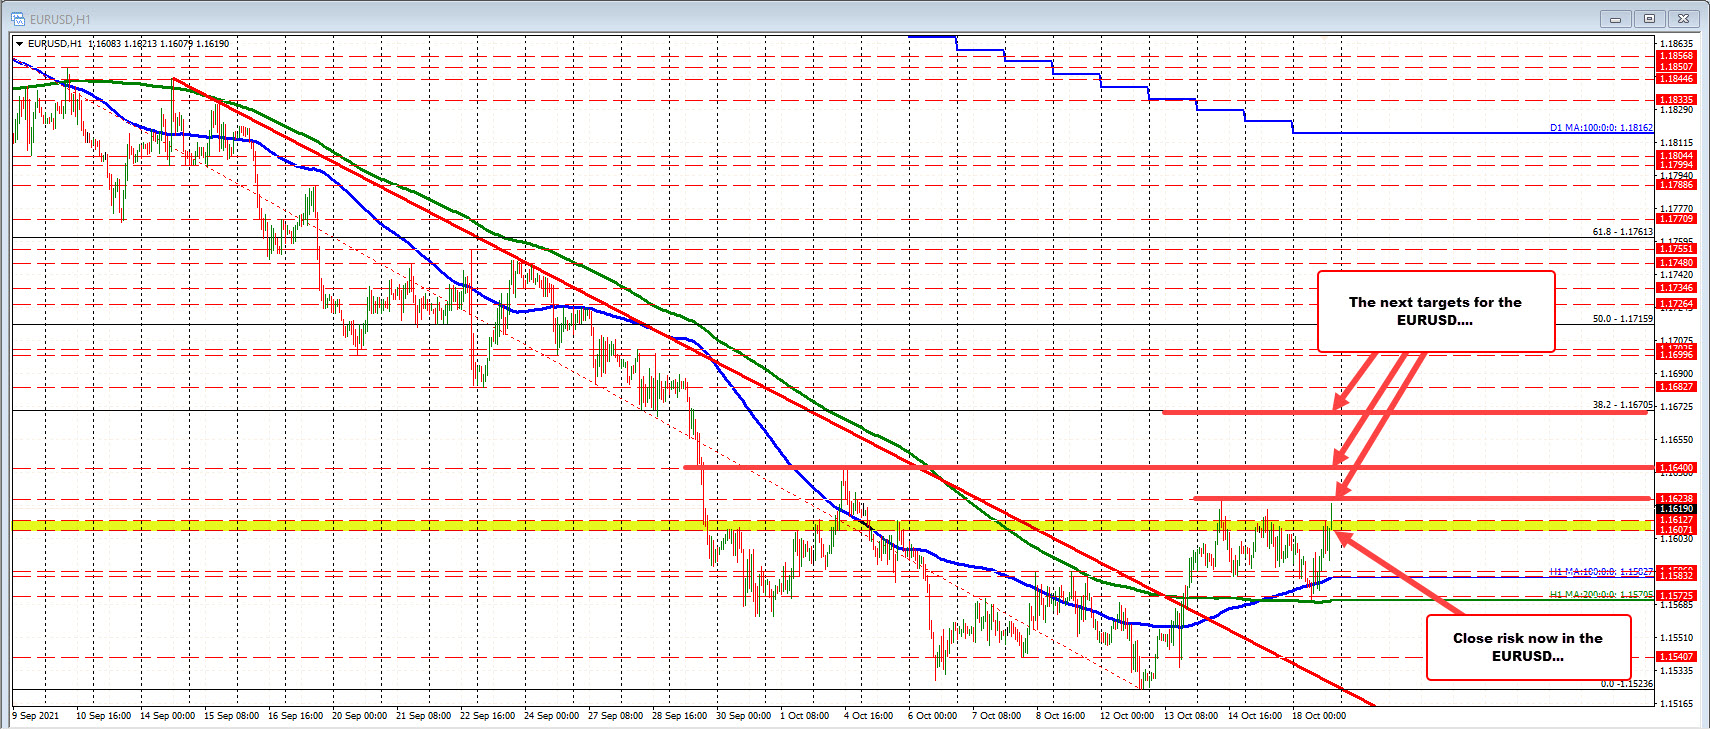 EURUSD moves to new highs. Test last week's high